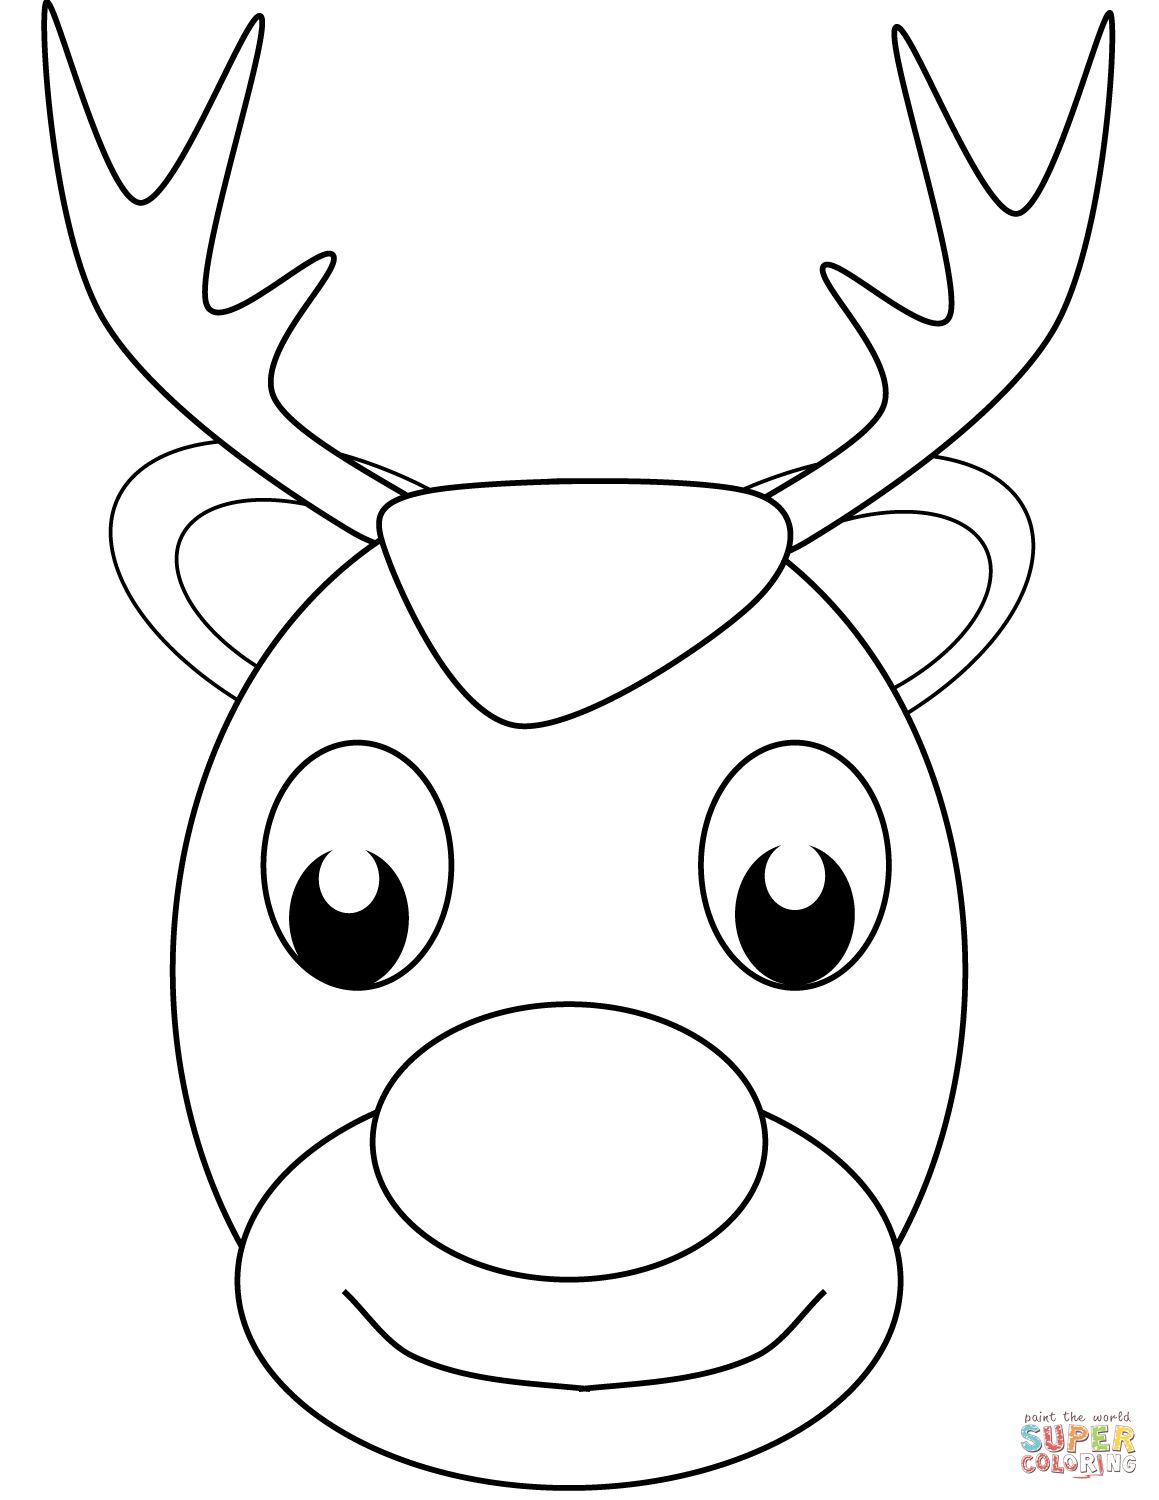 1159x1500 Christmas Reindeer Coloring Page Free Printable Coloring Pages